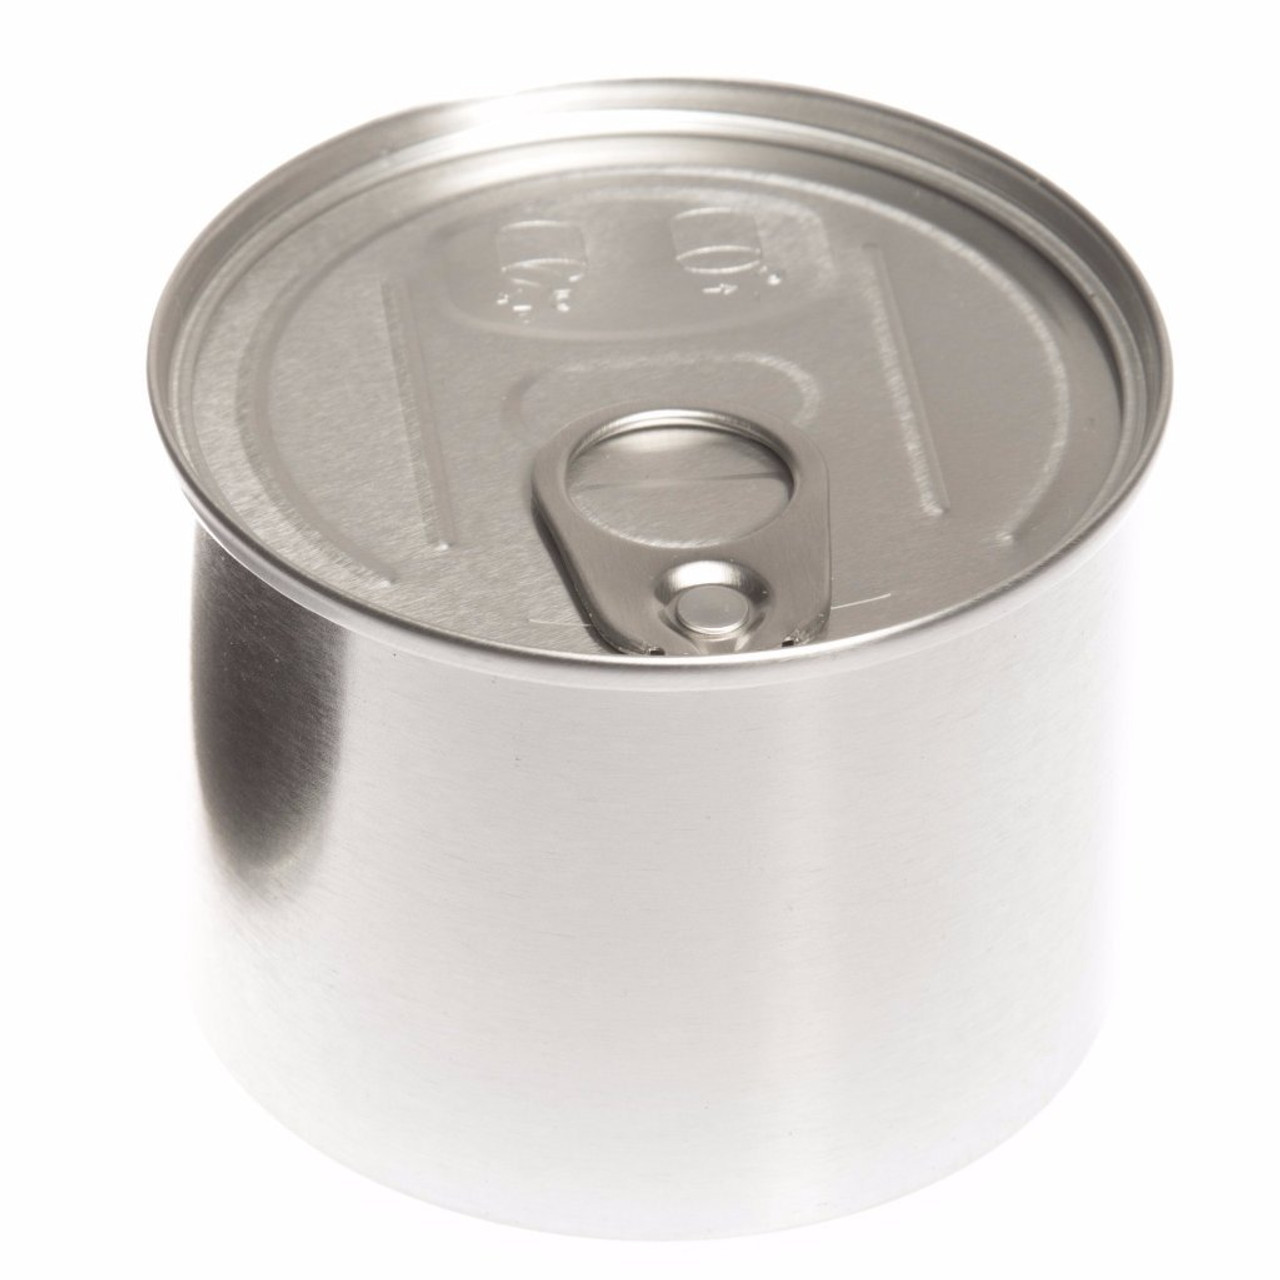 Baked Bean Tin With Ring Pull Lid - 200ml